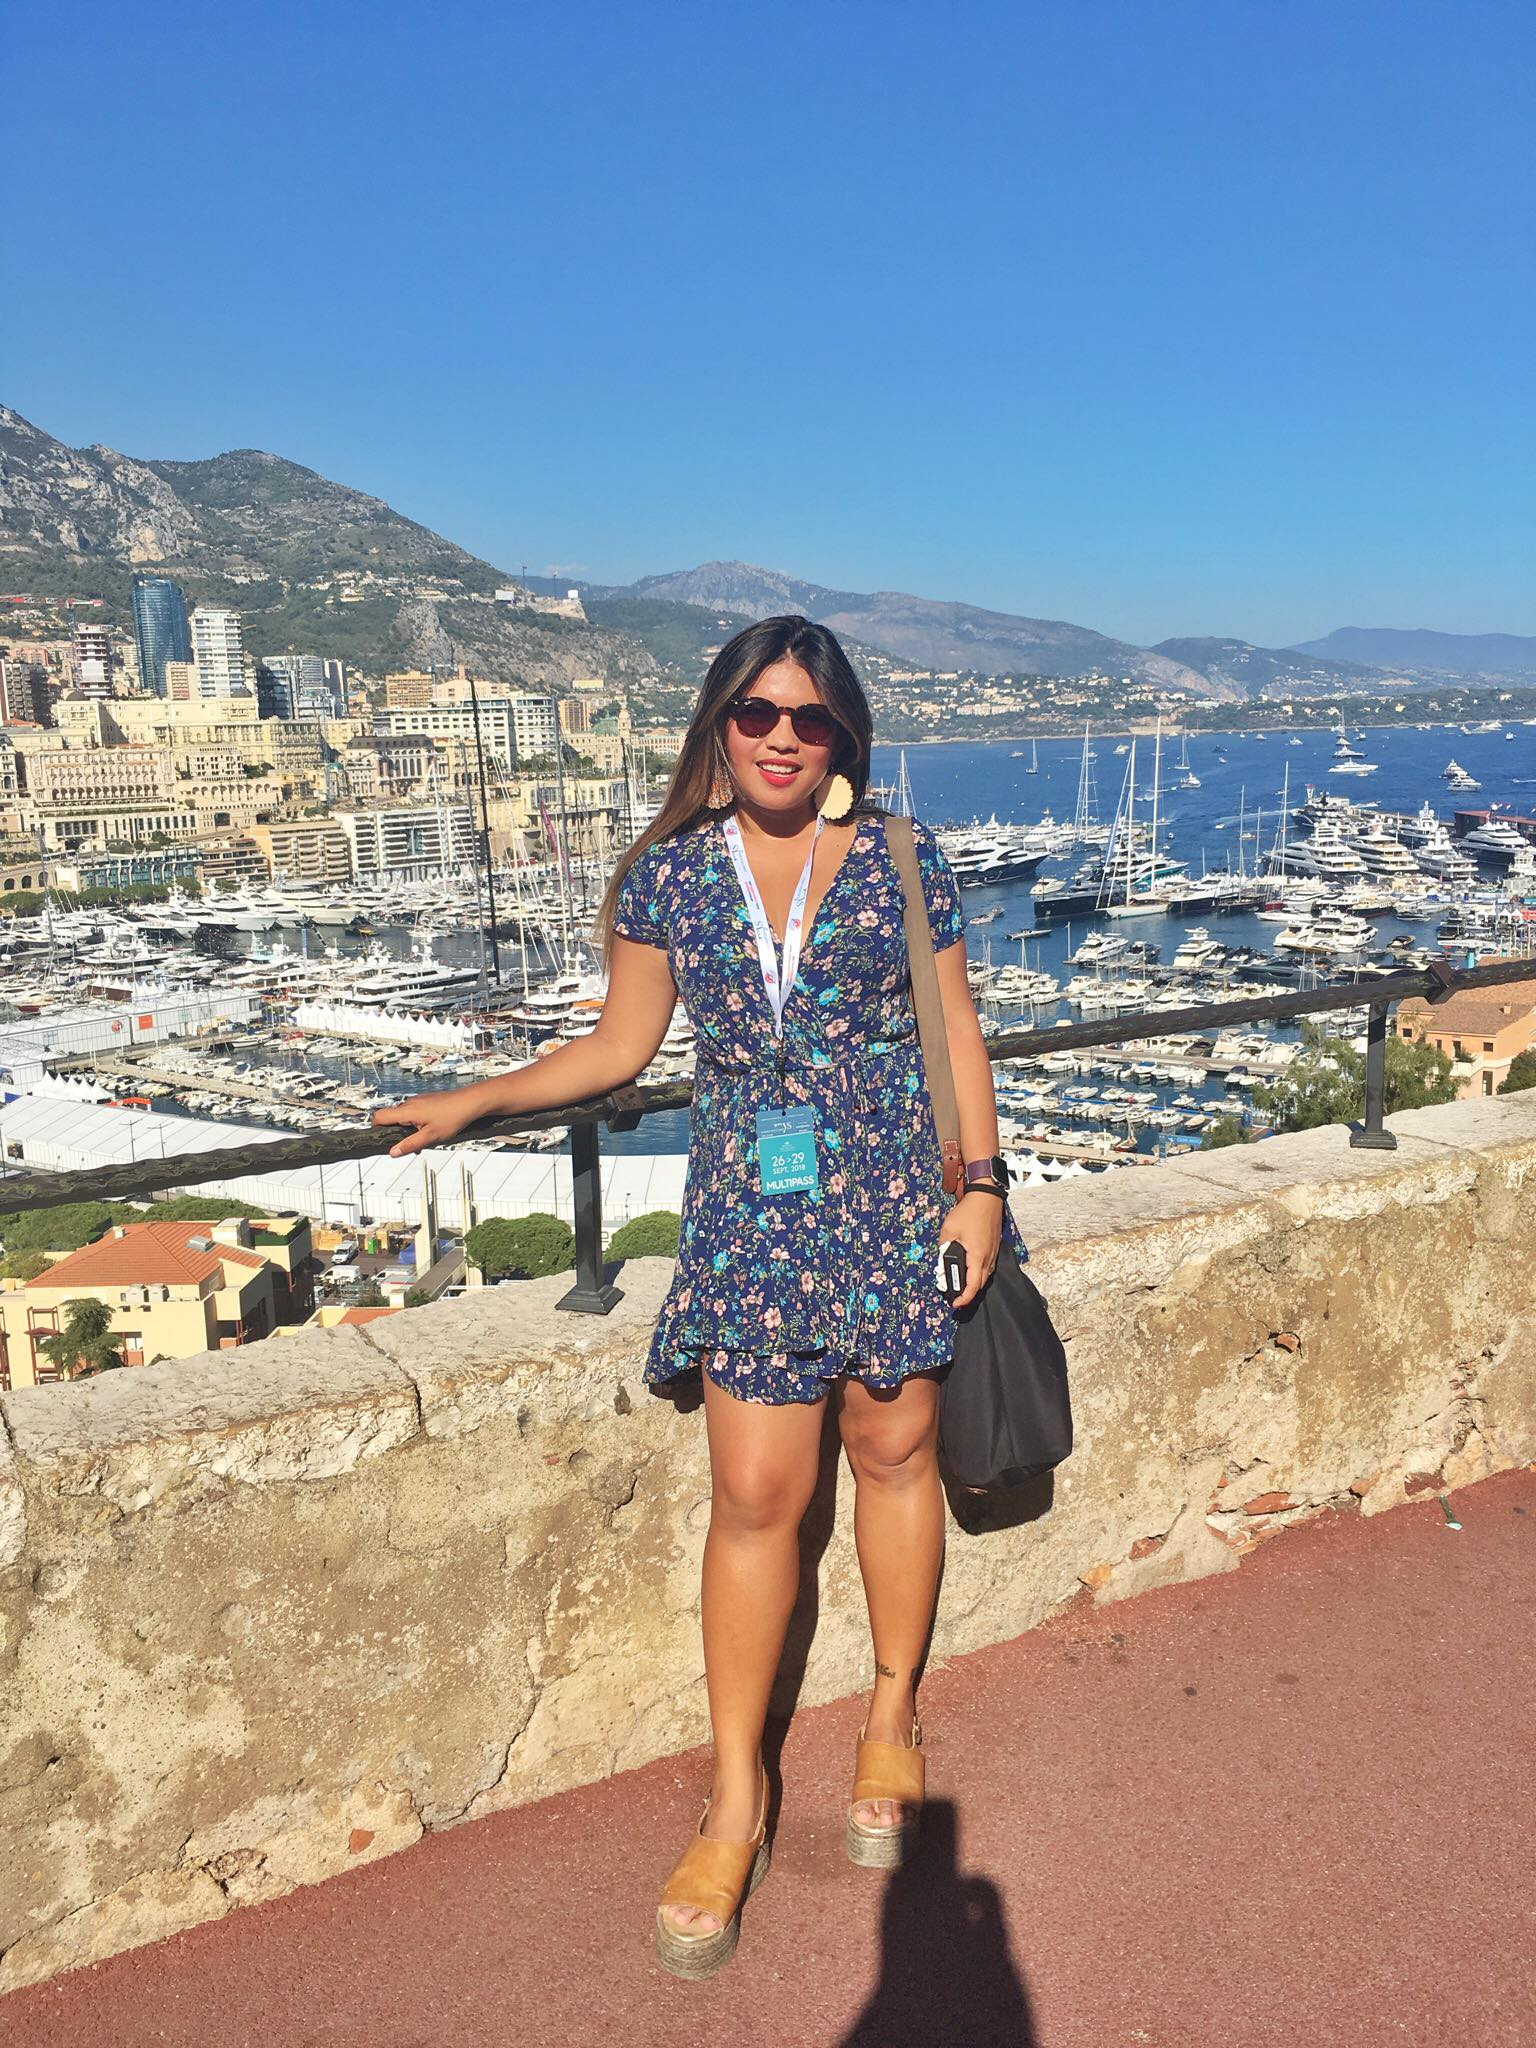 Kach Solo Travels Day 47: Hello from Monaco! ❤️